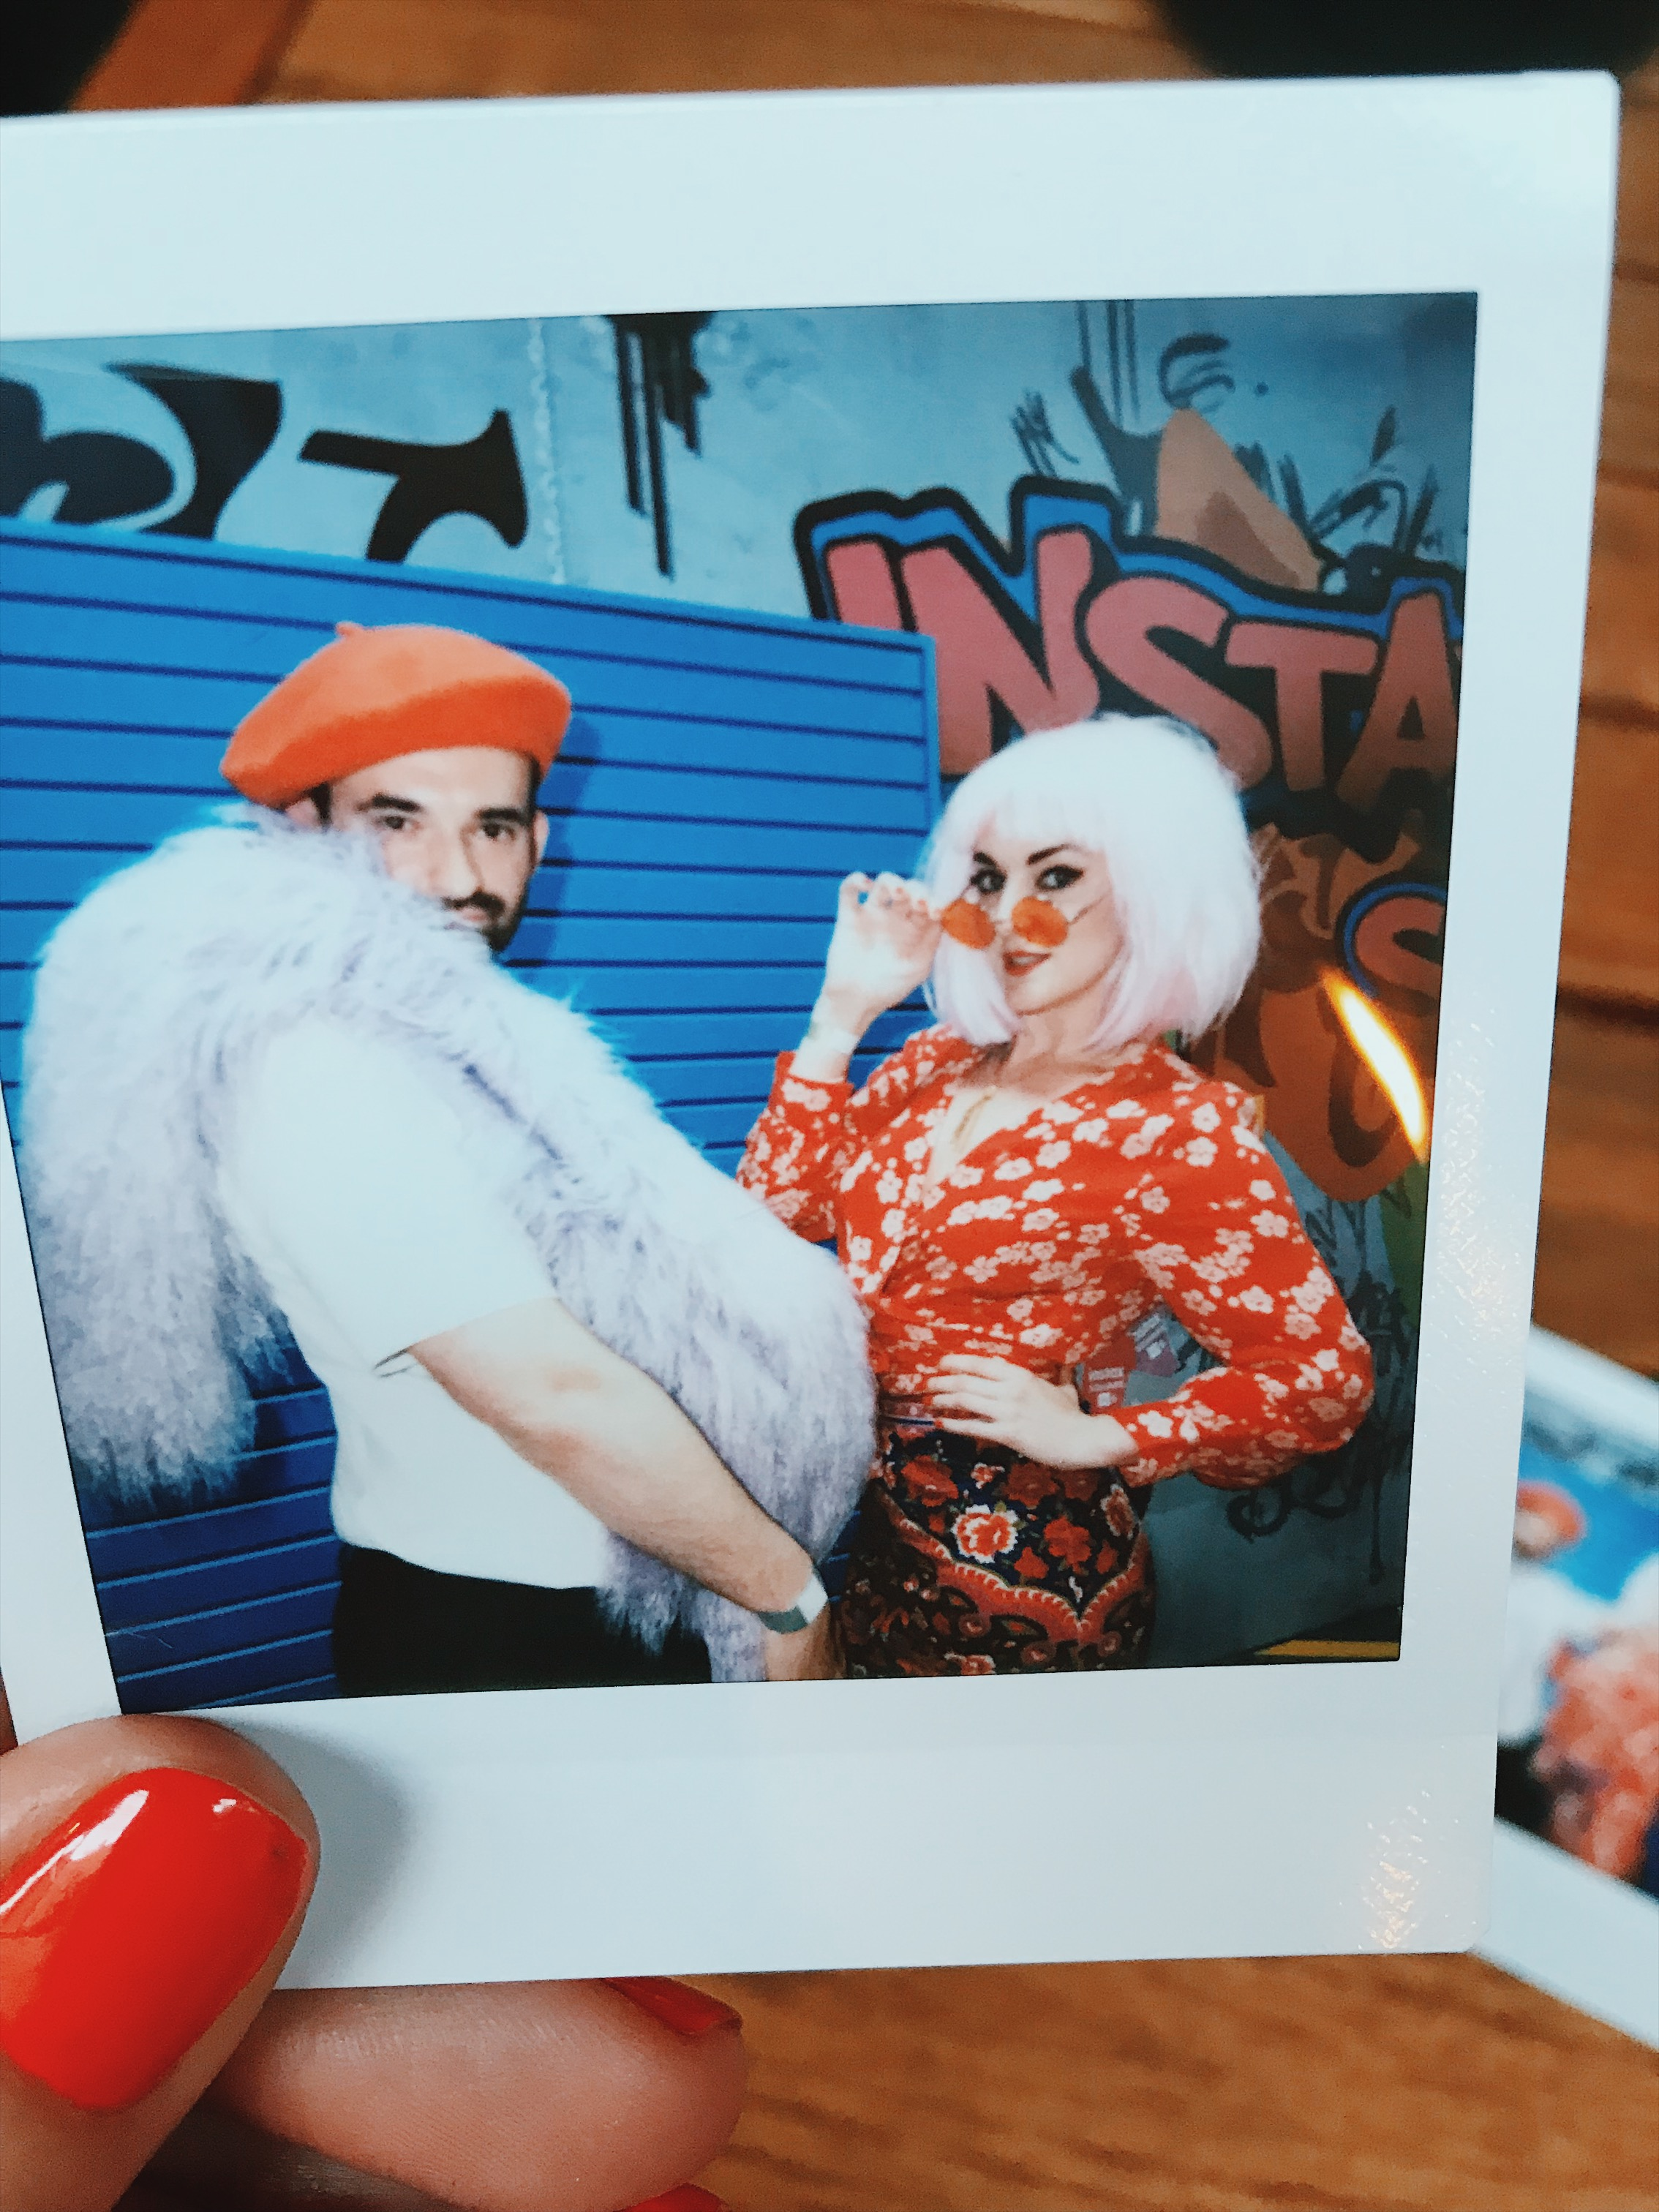 James Barley and me, playing dress-up at the Instax SQ6 launch – photo taken using the new Instax SQ6 camera